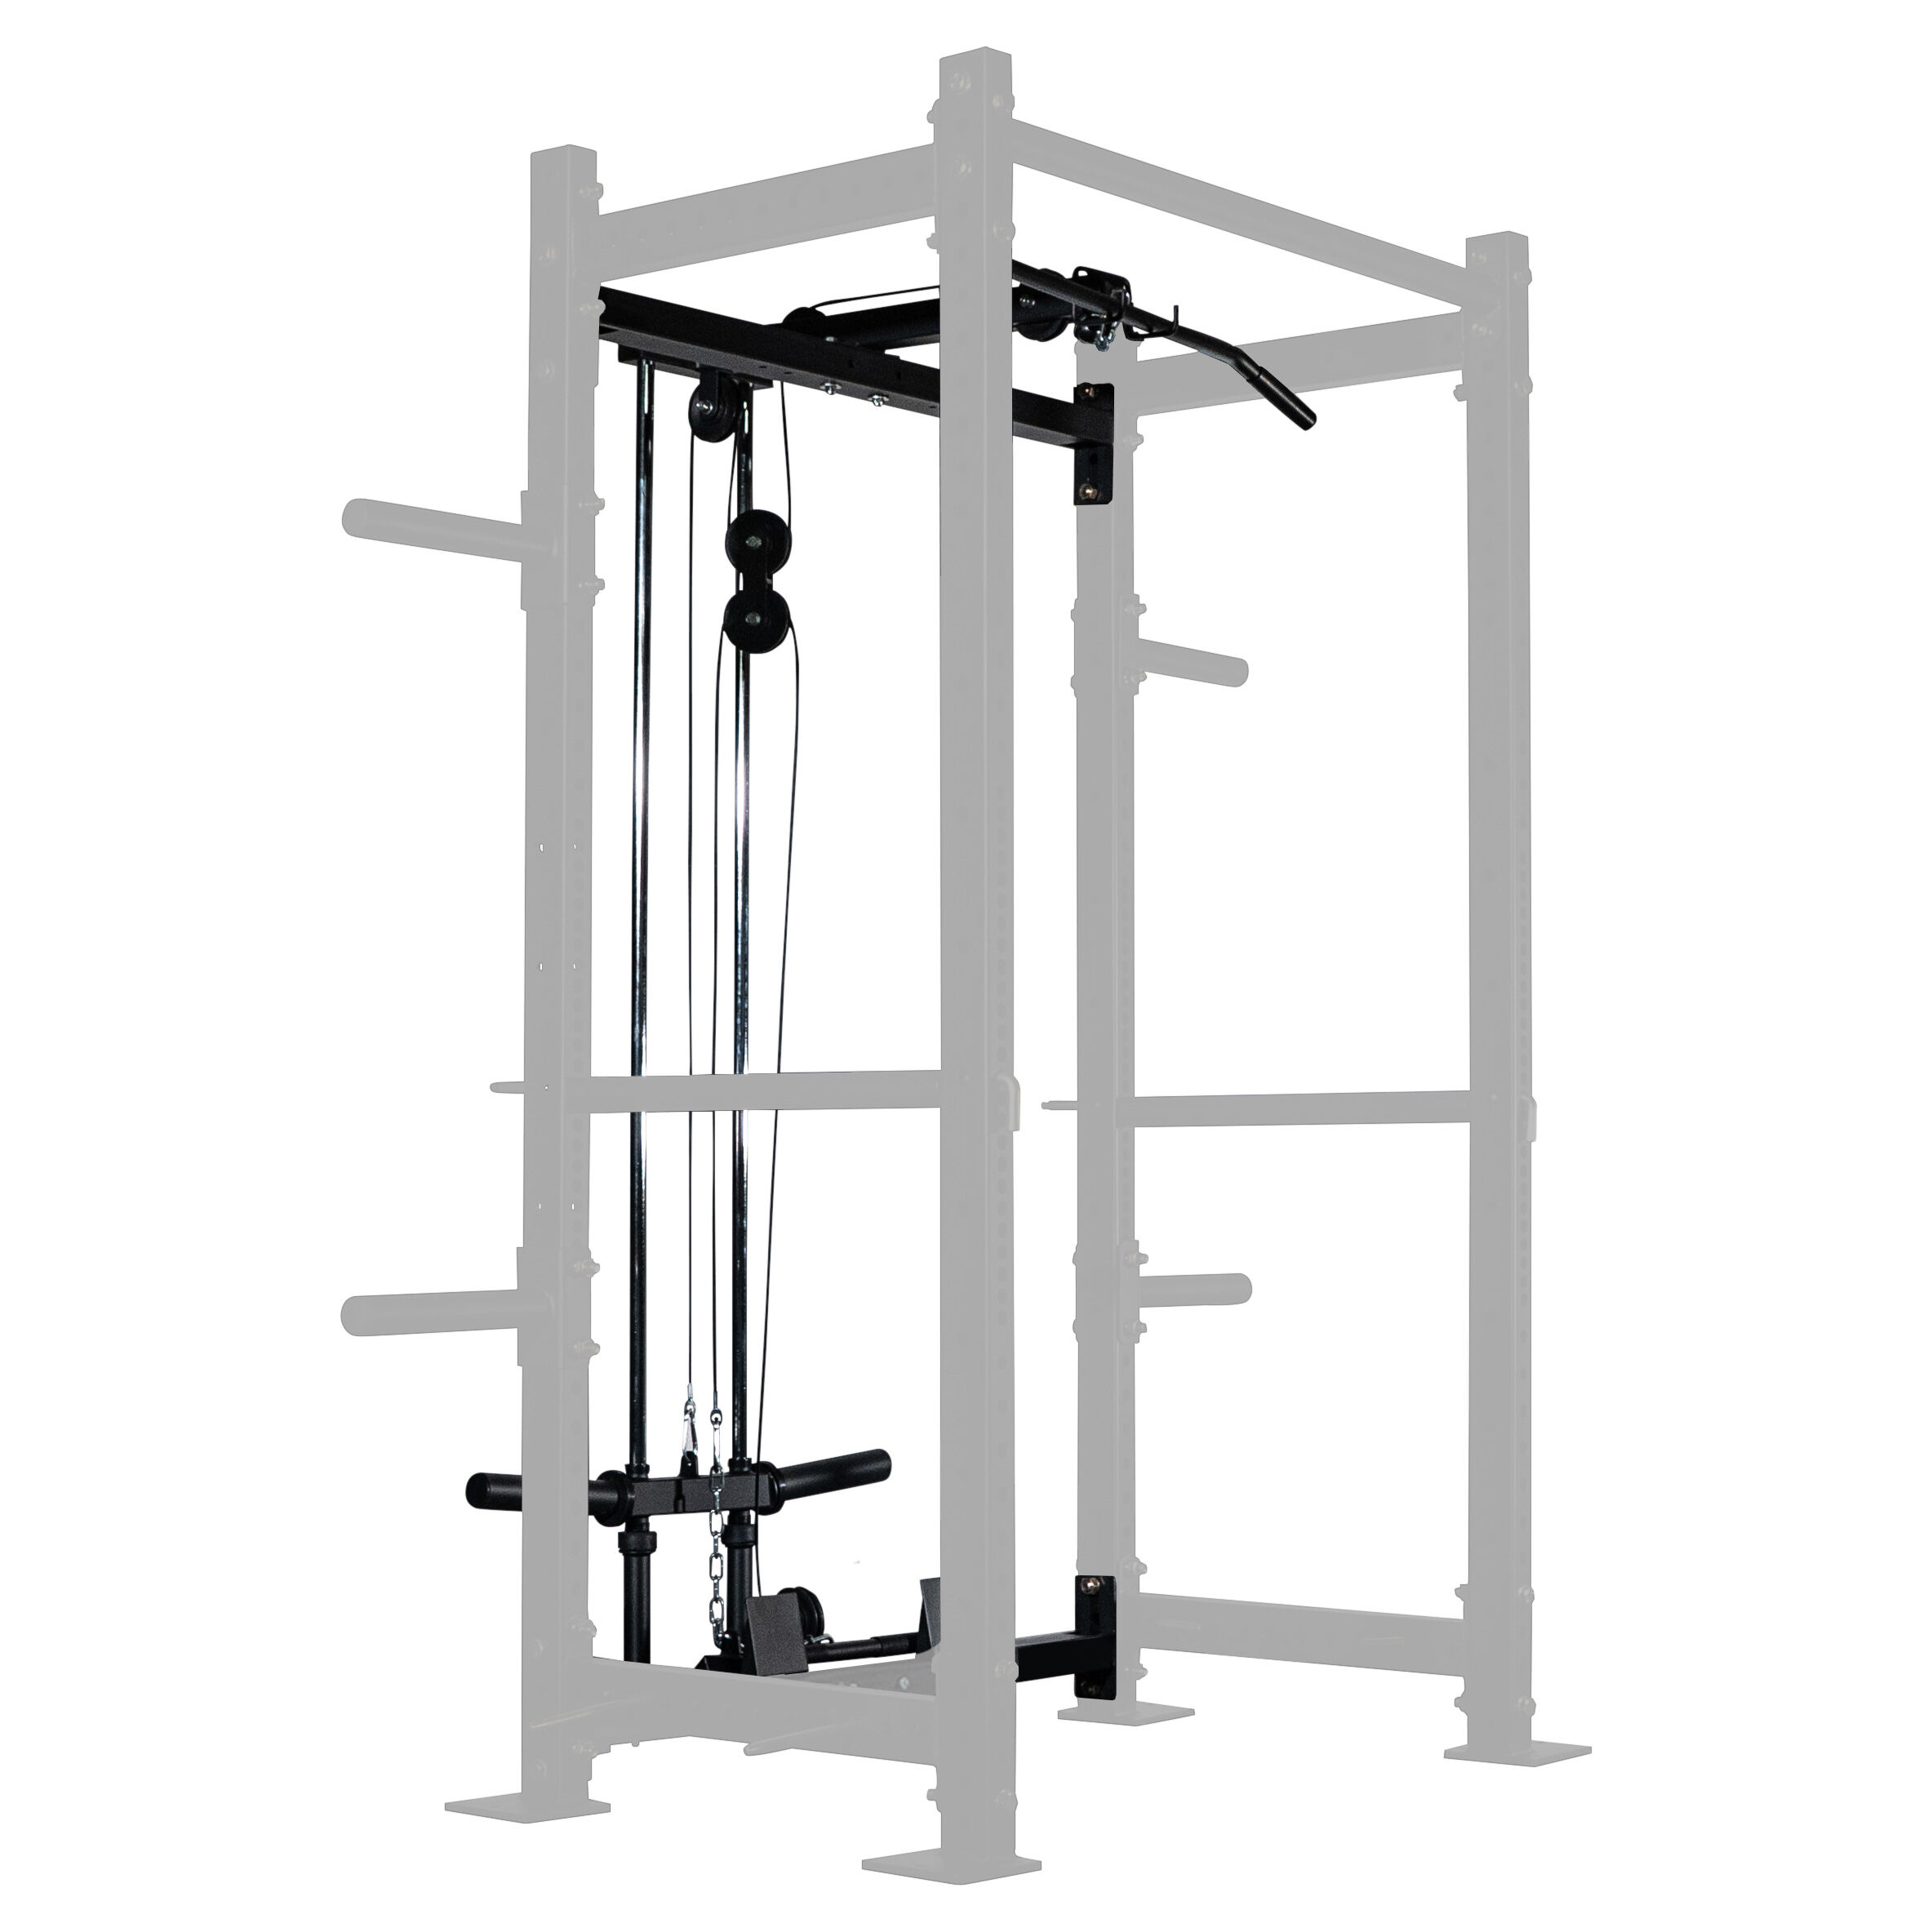 lat tower short height rack attachment x 2 x 3 and t 3 series power rack compatible